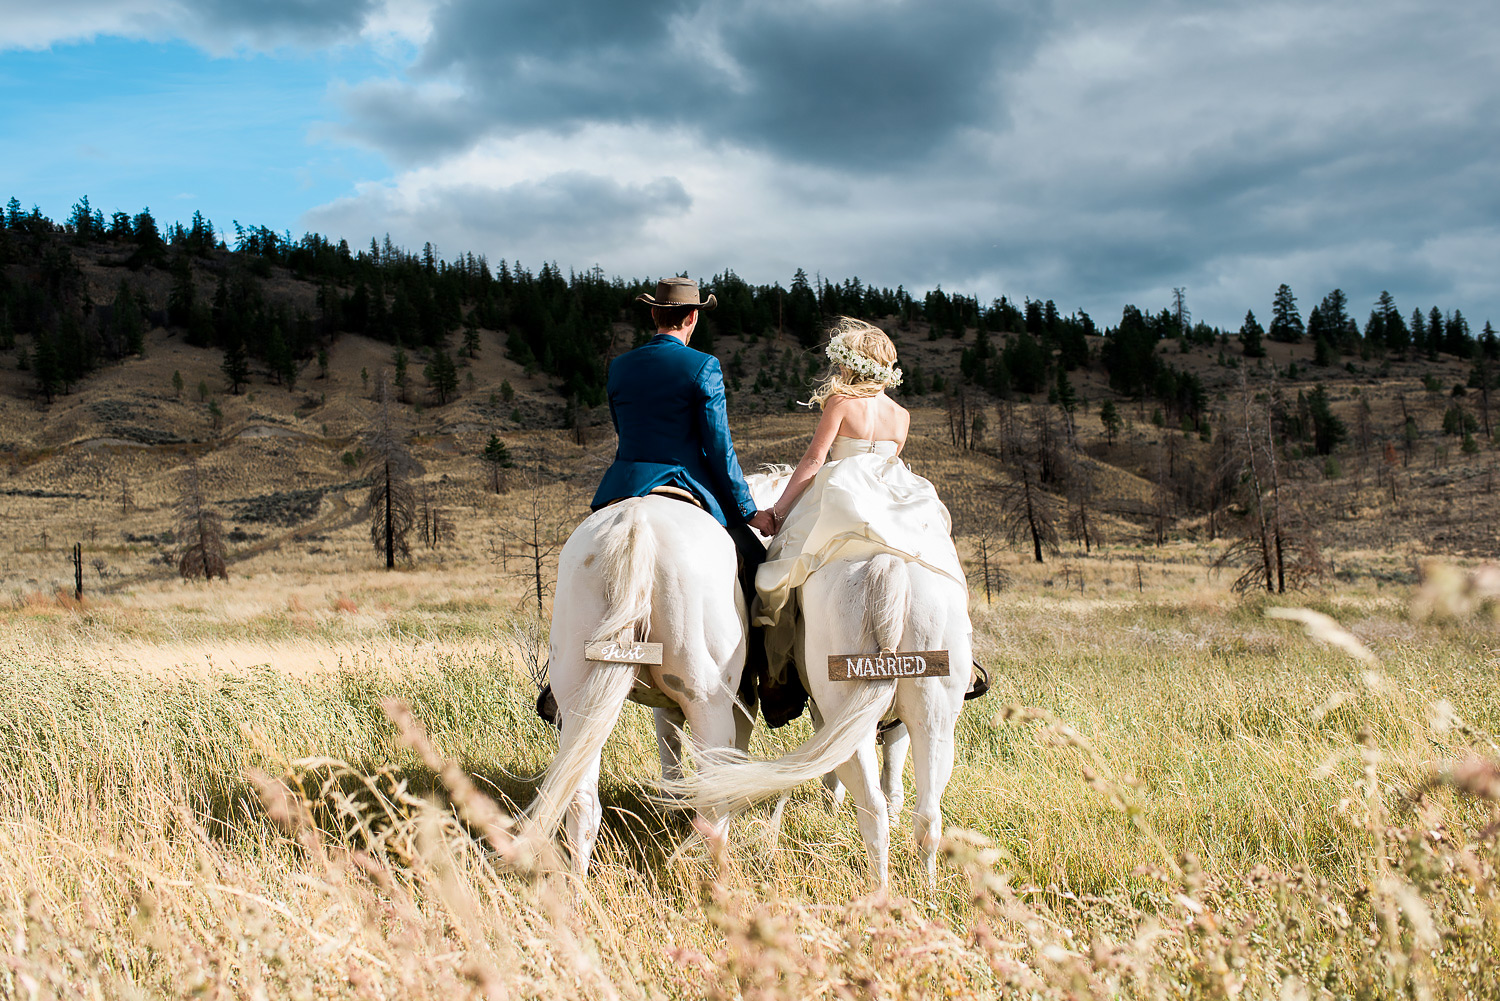 Horses Gallop Behind Bride And Groom In Viral Wedding Photo